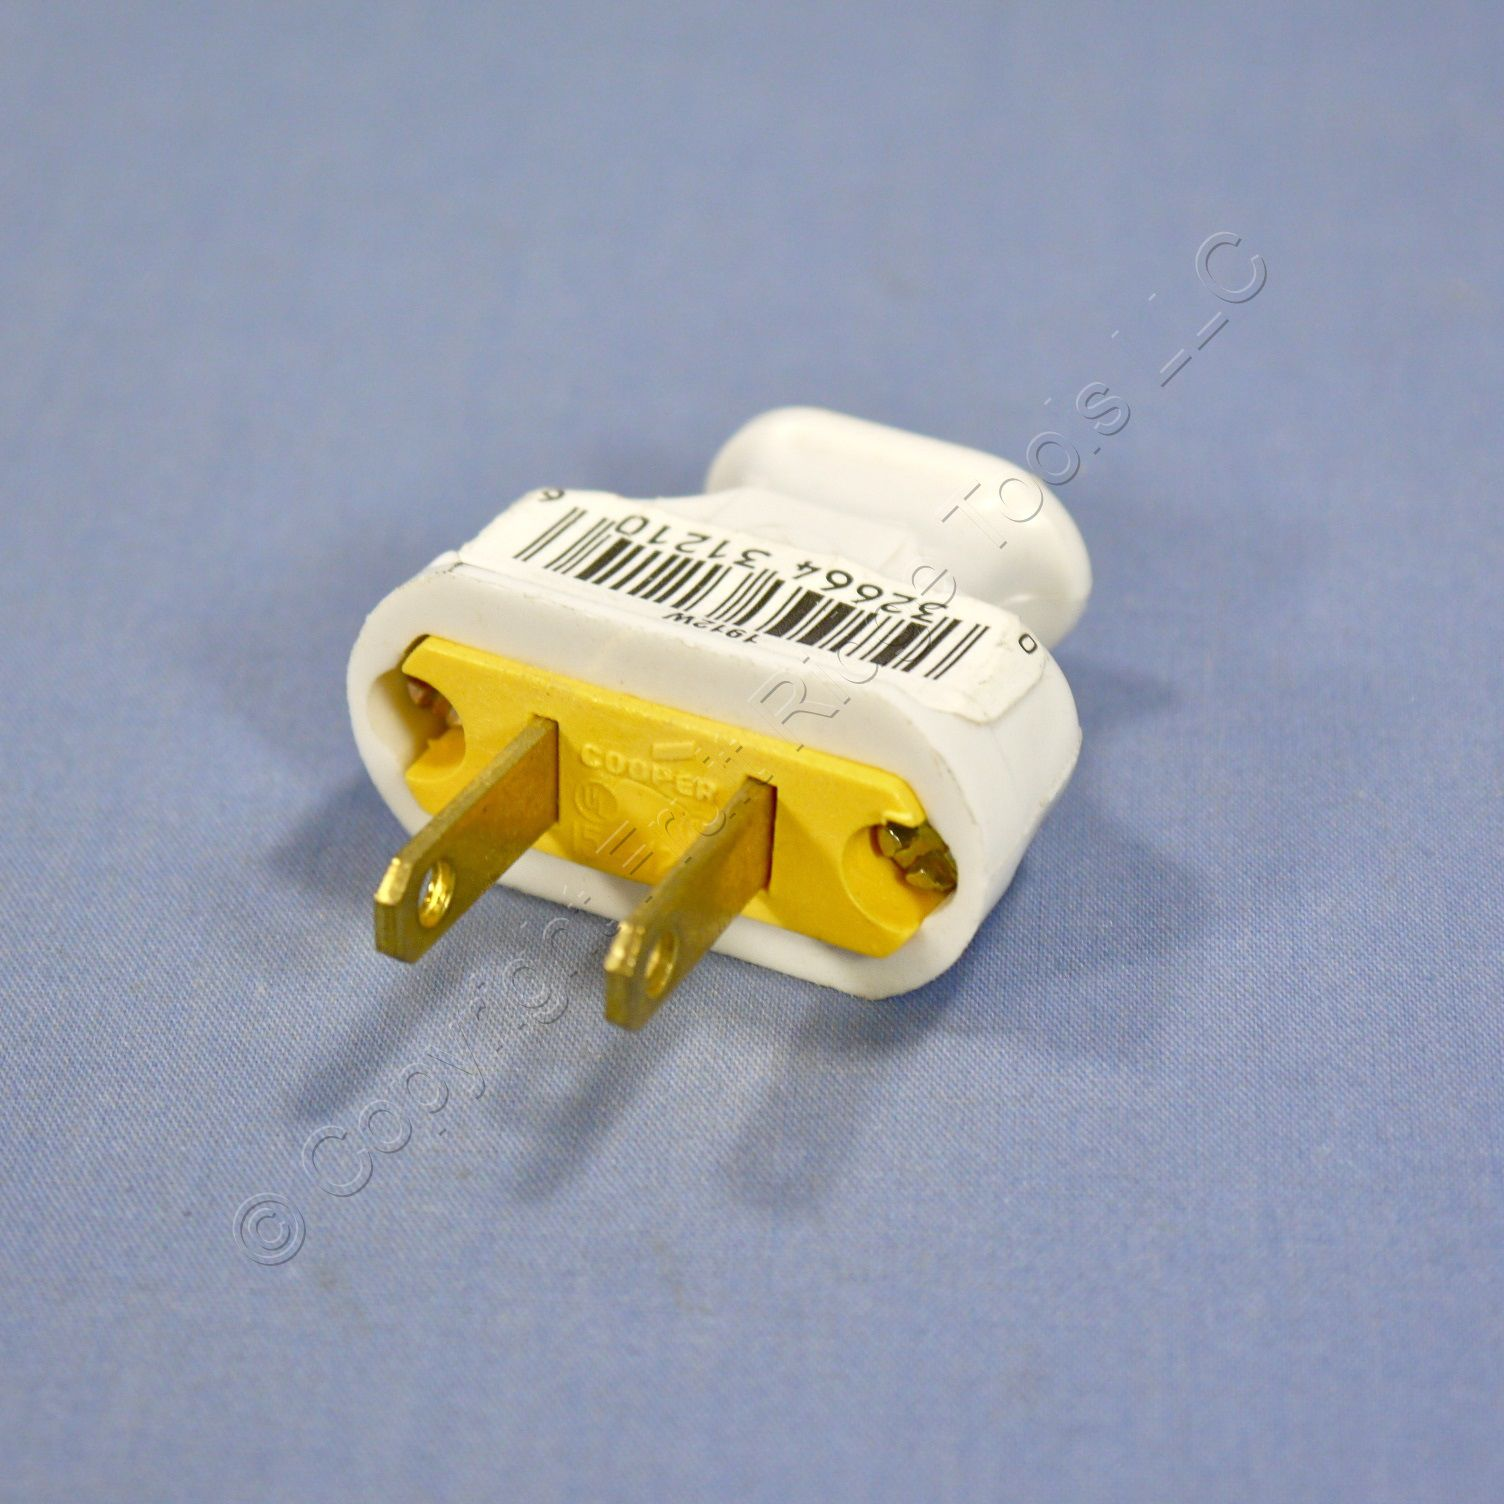 Swell Cooper White Residential Non Polarized Plug Cord End 15A 125V Nema 1 Wiring 101 Vieworaxxcnl